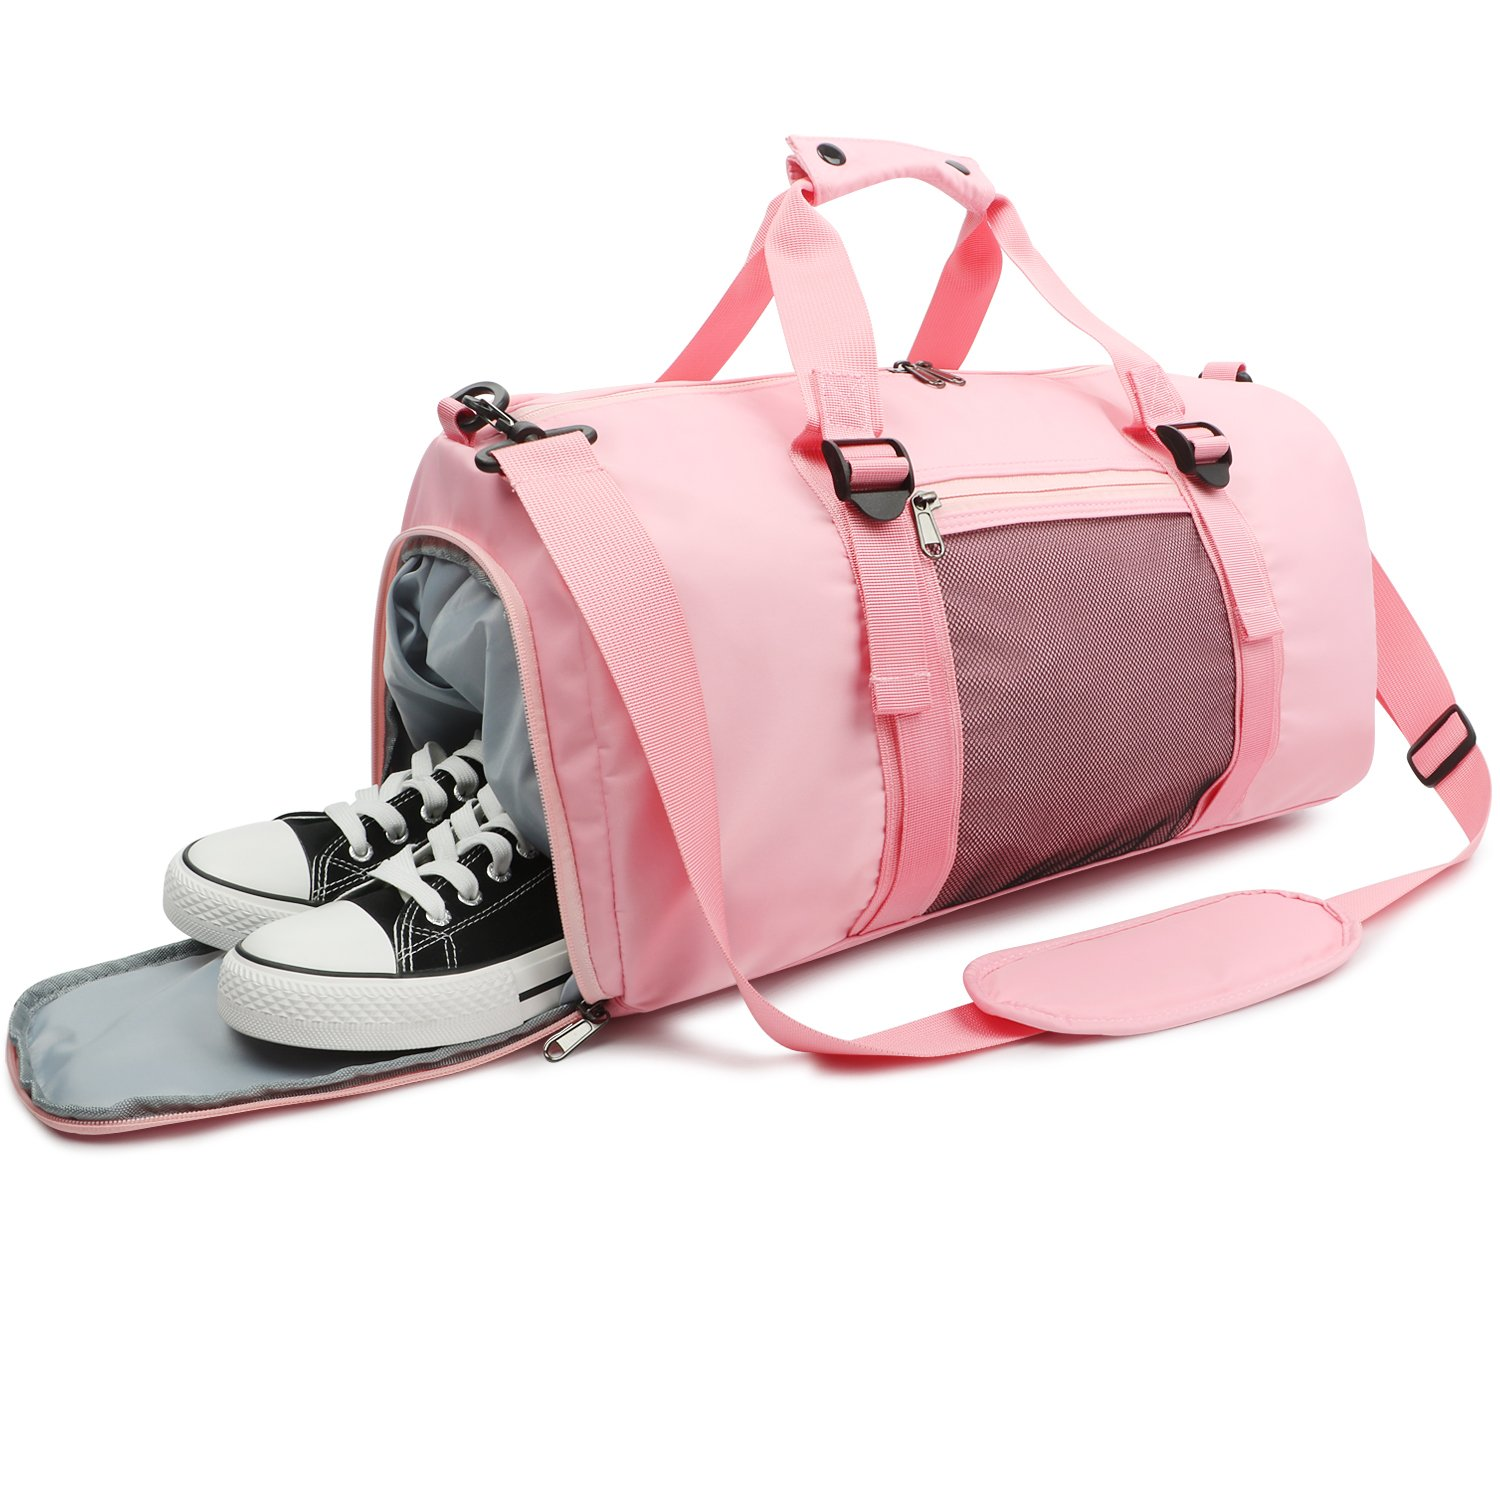 Oflamn Pink Sports Gym Bag with Shoes Compartment & Wet Pocket Lightweight Waterproof Travel Duffle for Men and Women OFGB102PIN